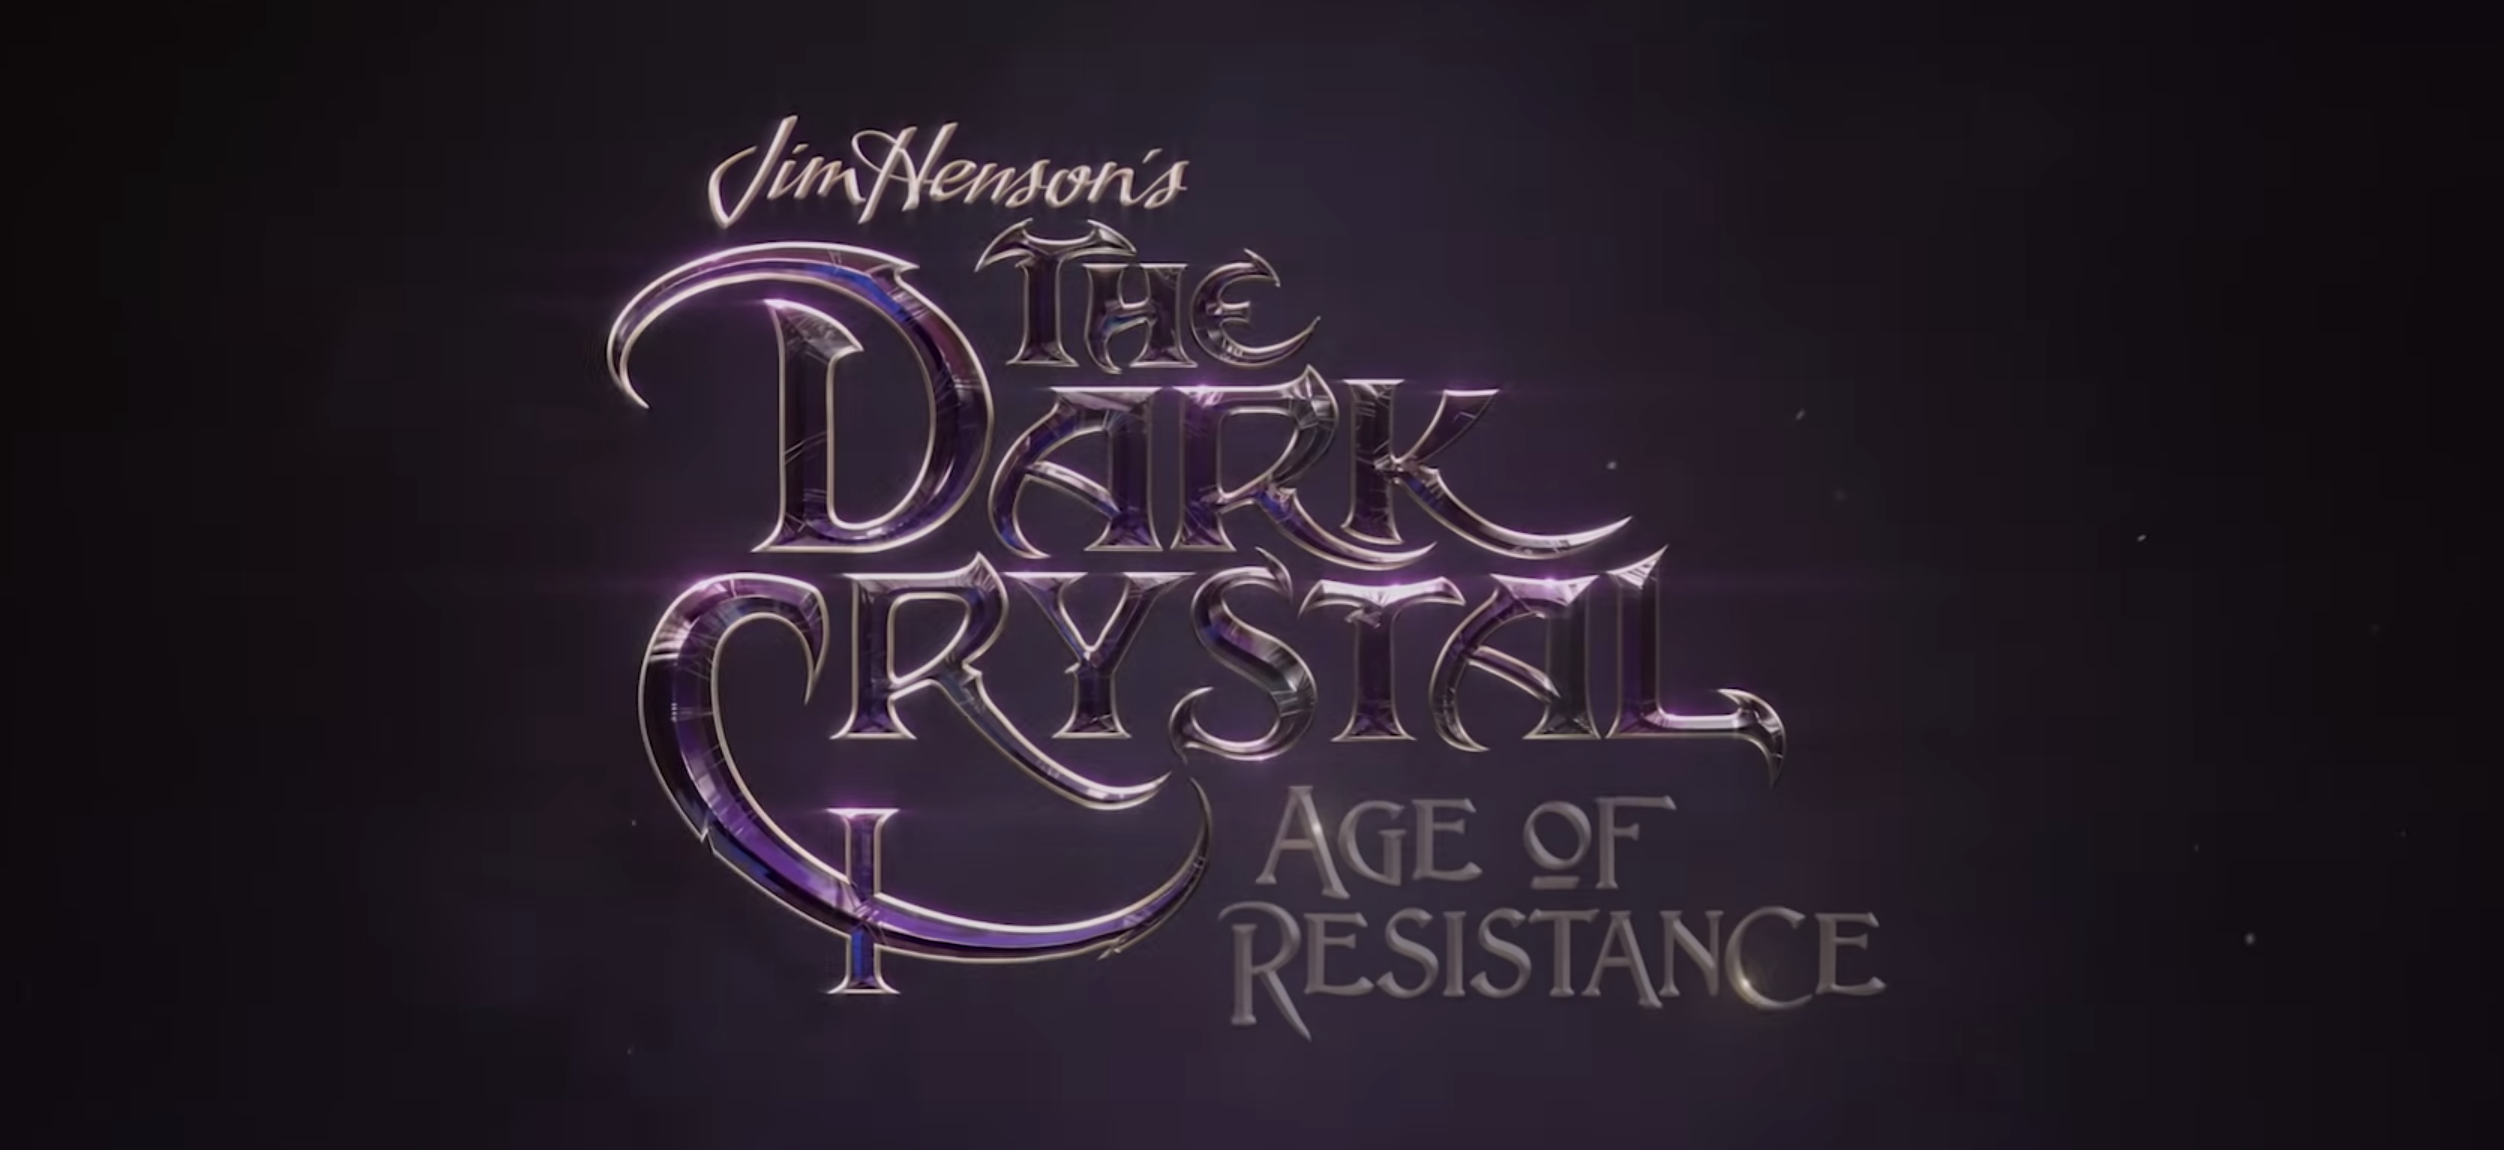 The Dark Crystal: Age of Resistance unveils breathtaking new footage featuring Simon Pegg and more